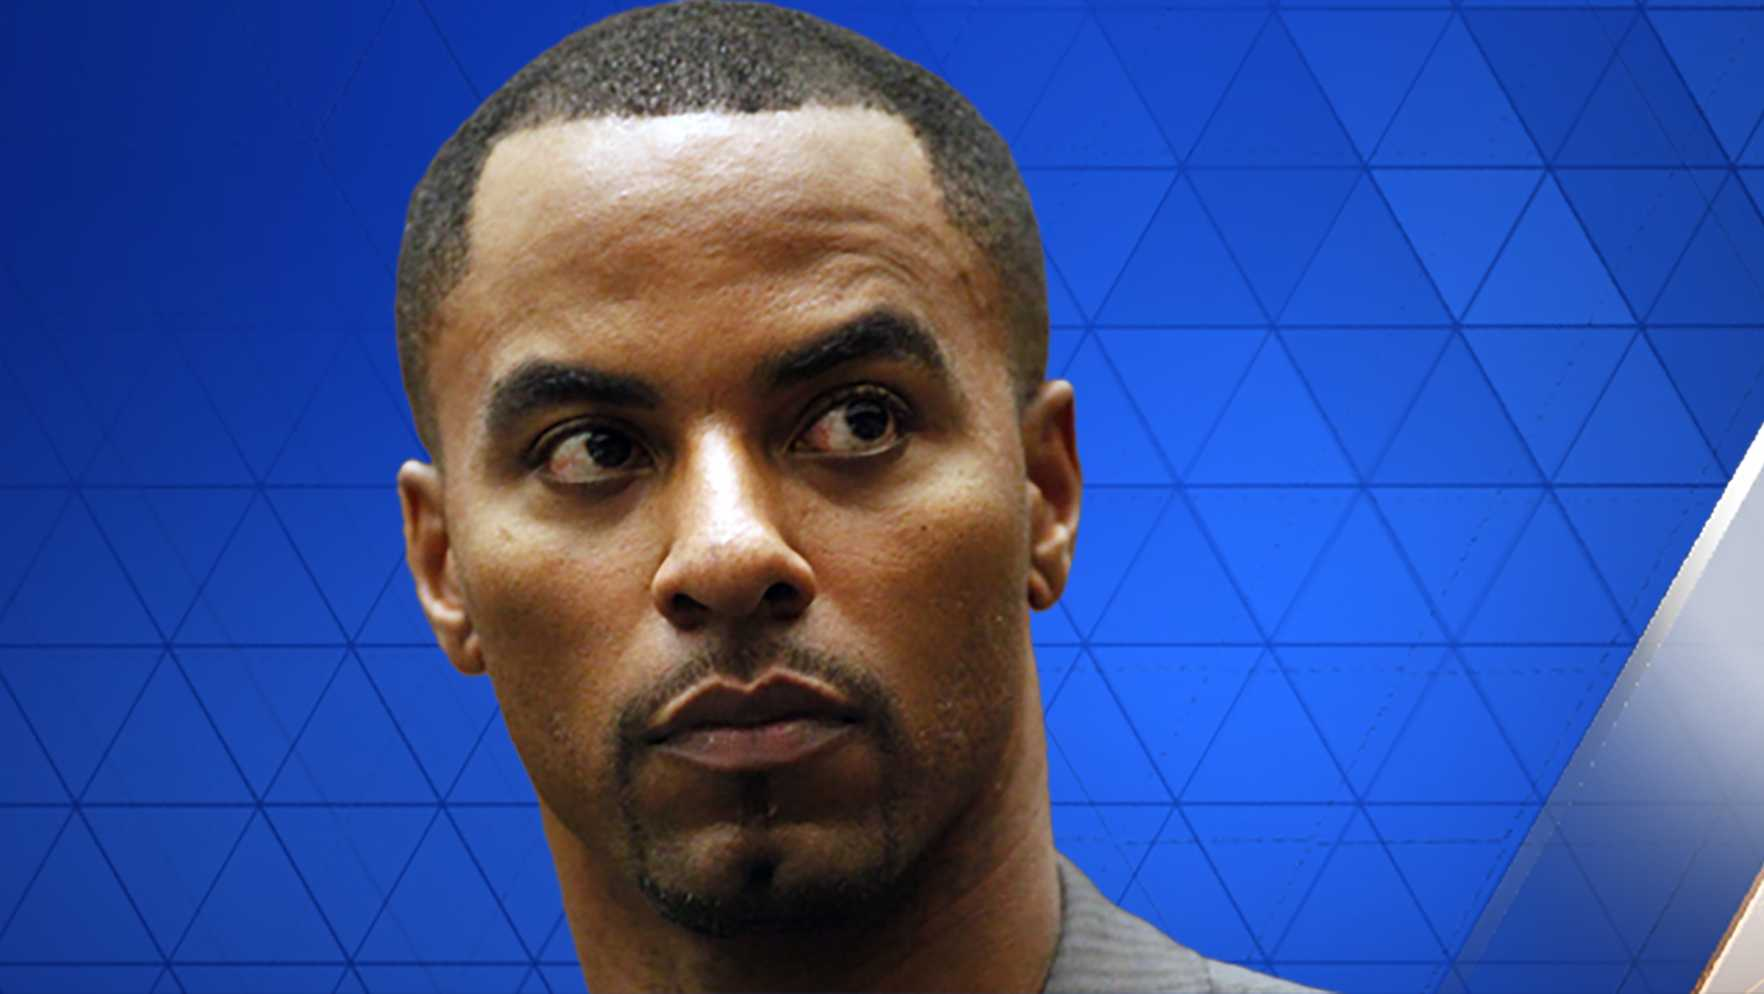 Darren Sharper sentenced to 20 years in prison